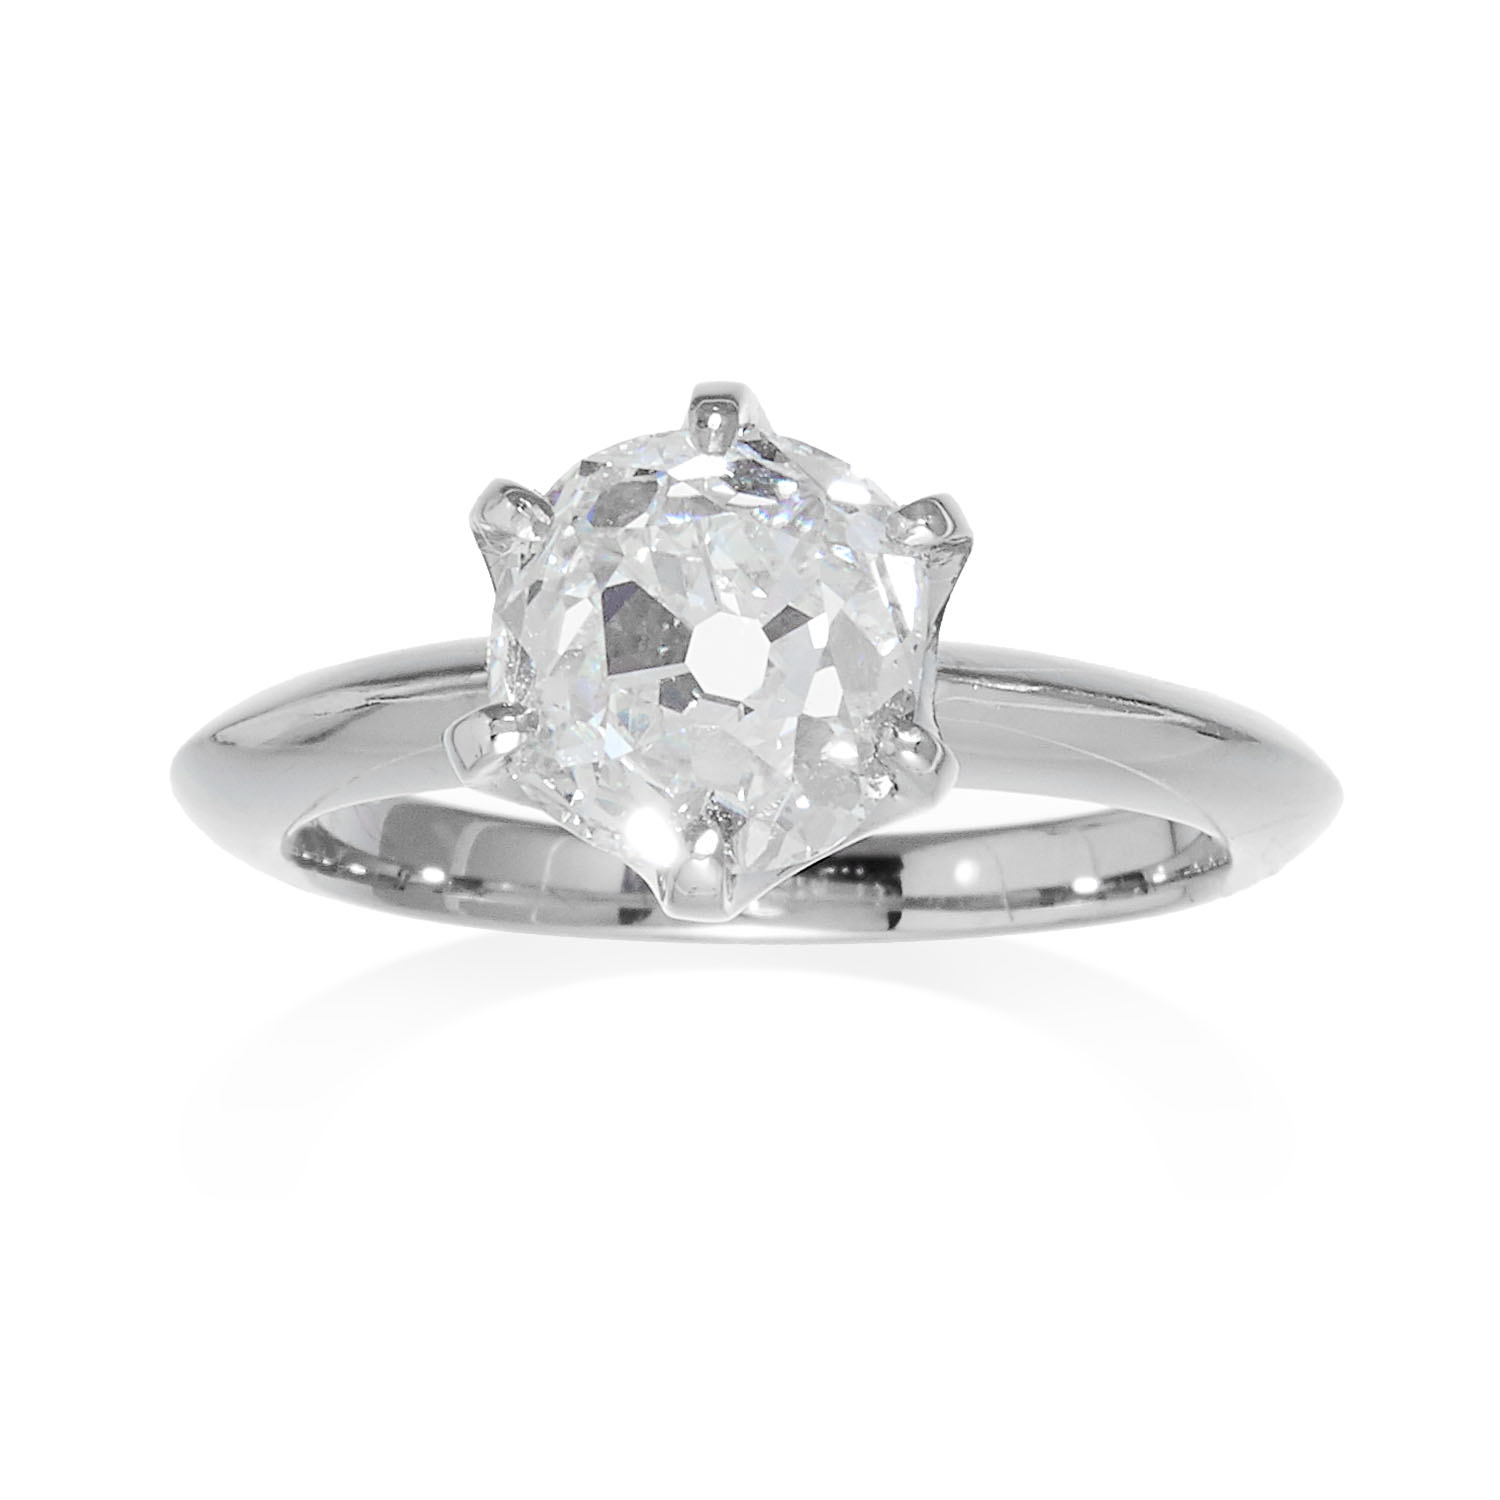 A 3.33 CARAT OLD CUT DIAMOND SOLITAIRE RING in platinum, set with an old cut diamond totalling